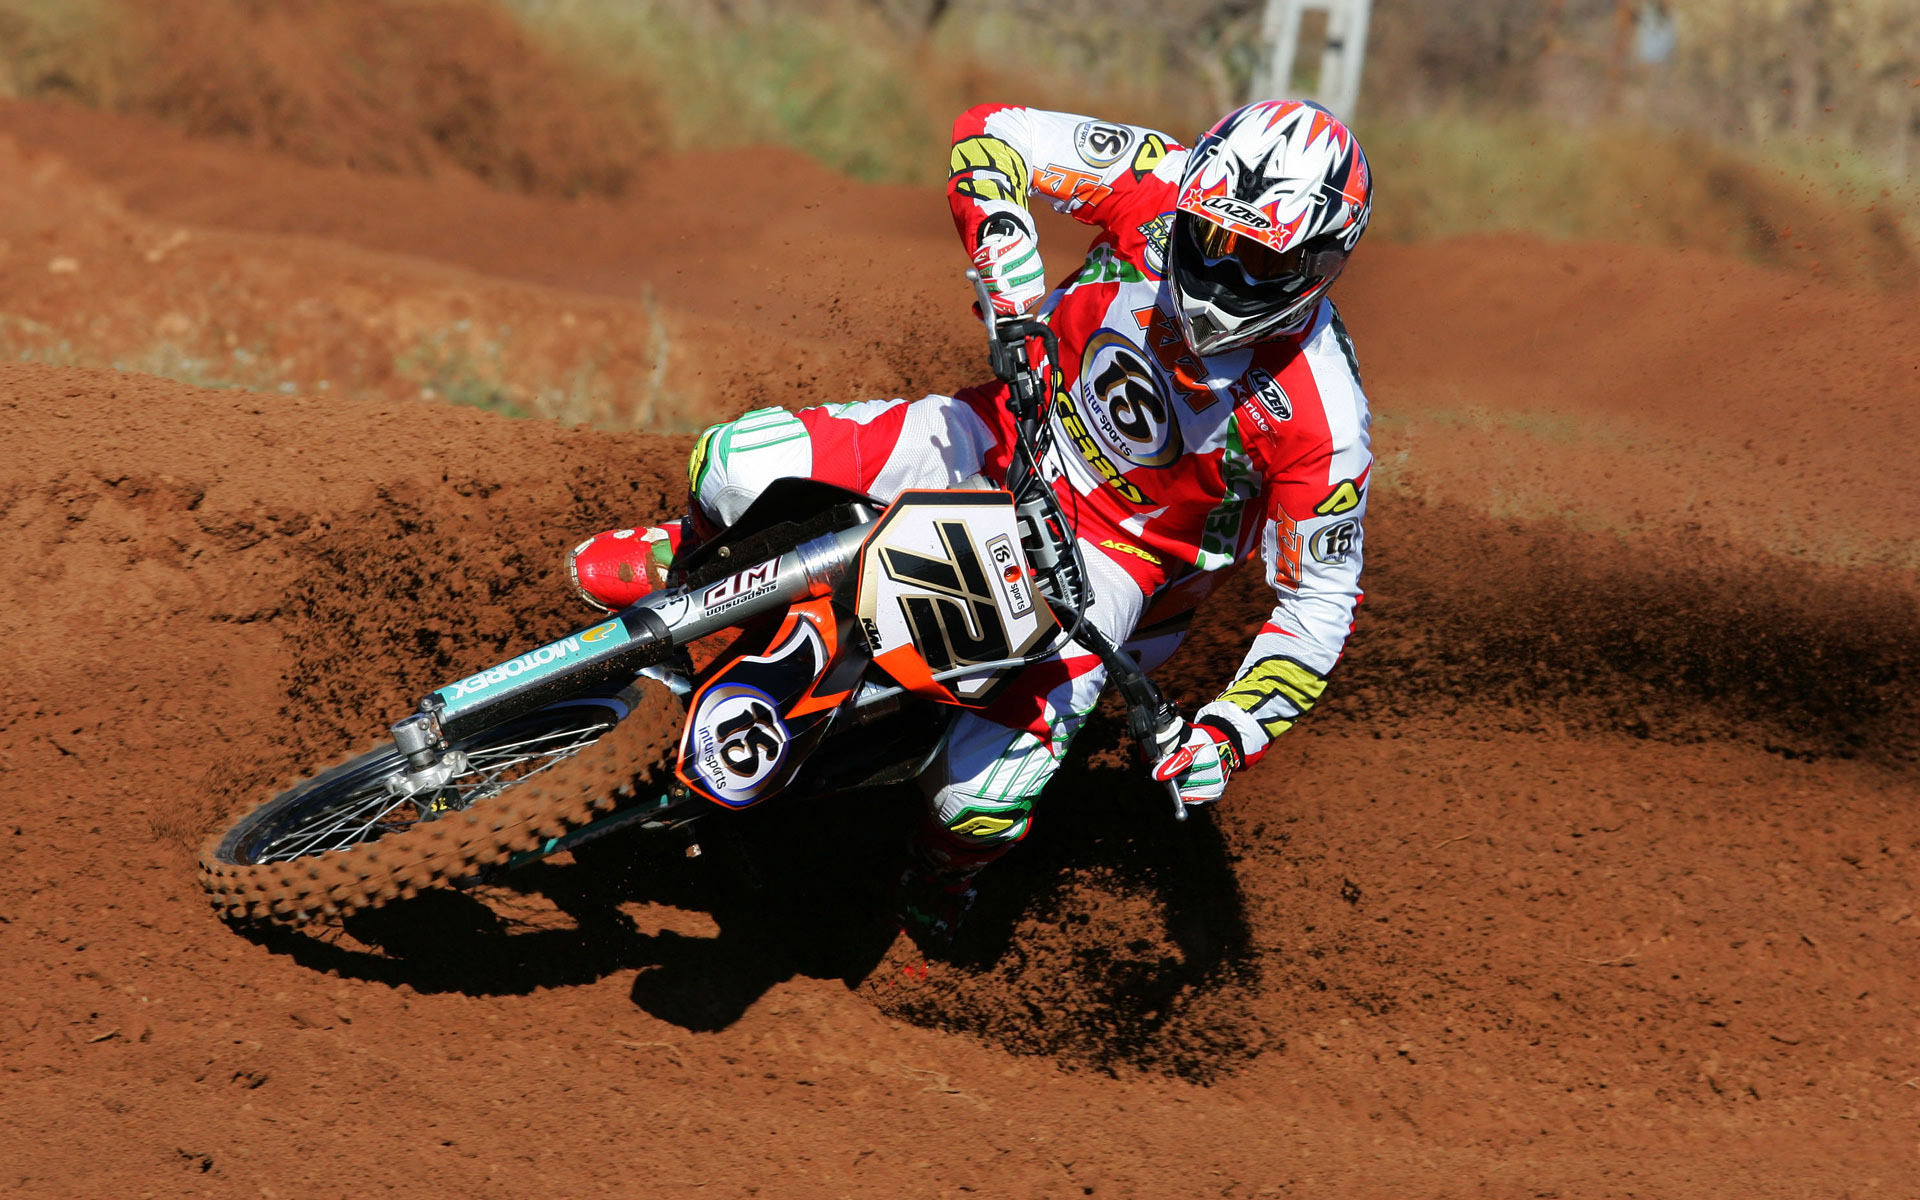 Motocross Wallpaper: Motocross Wallpapers, Pictures, Images